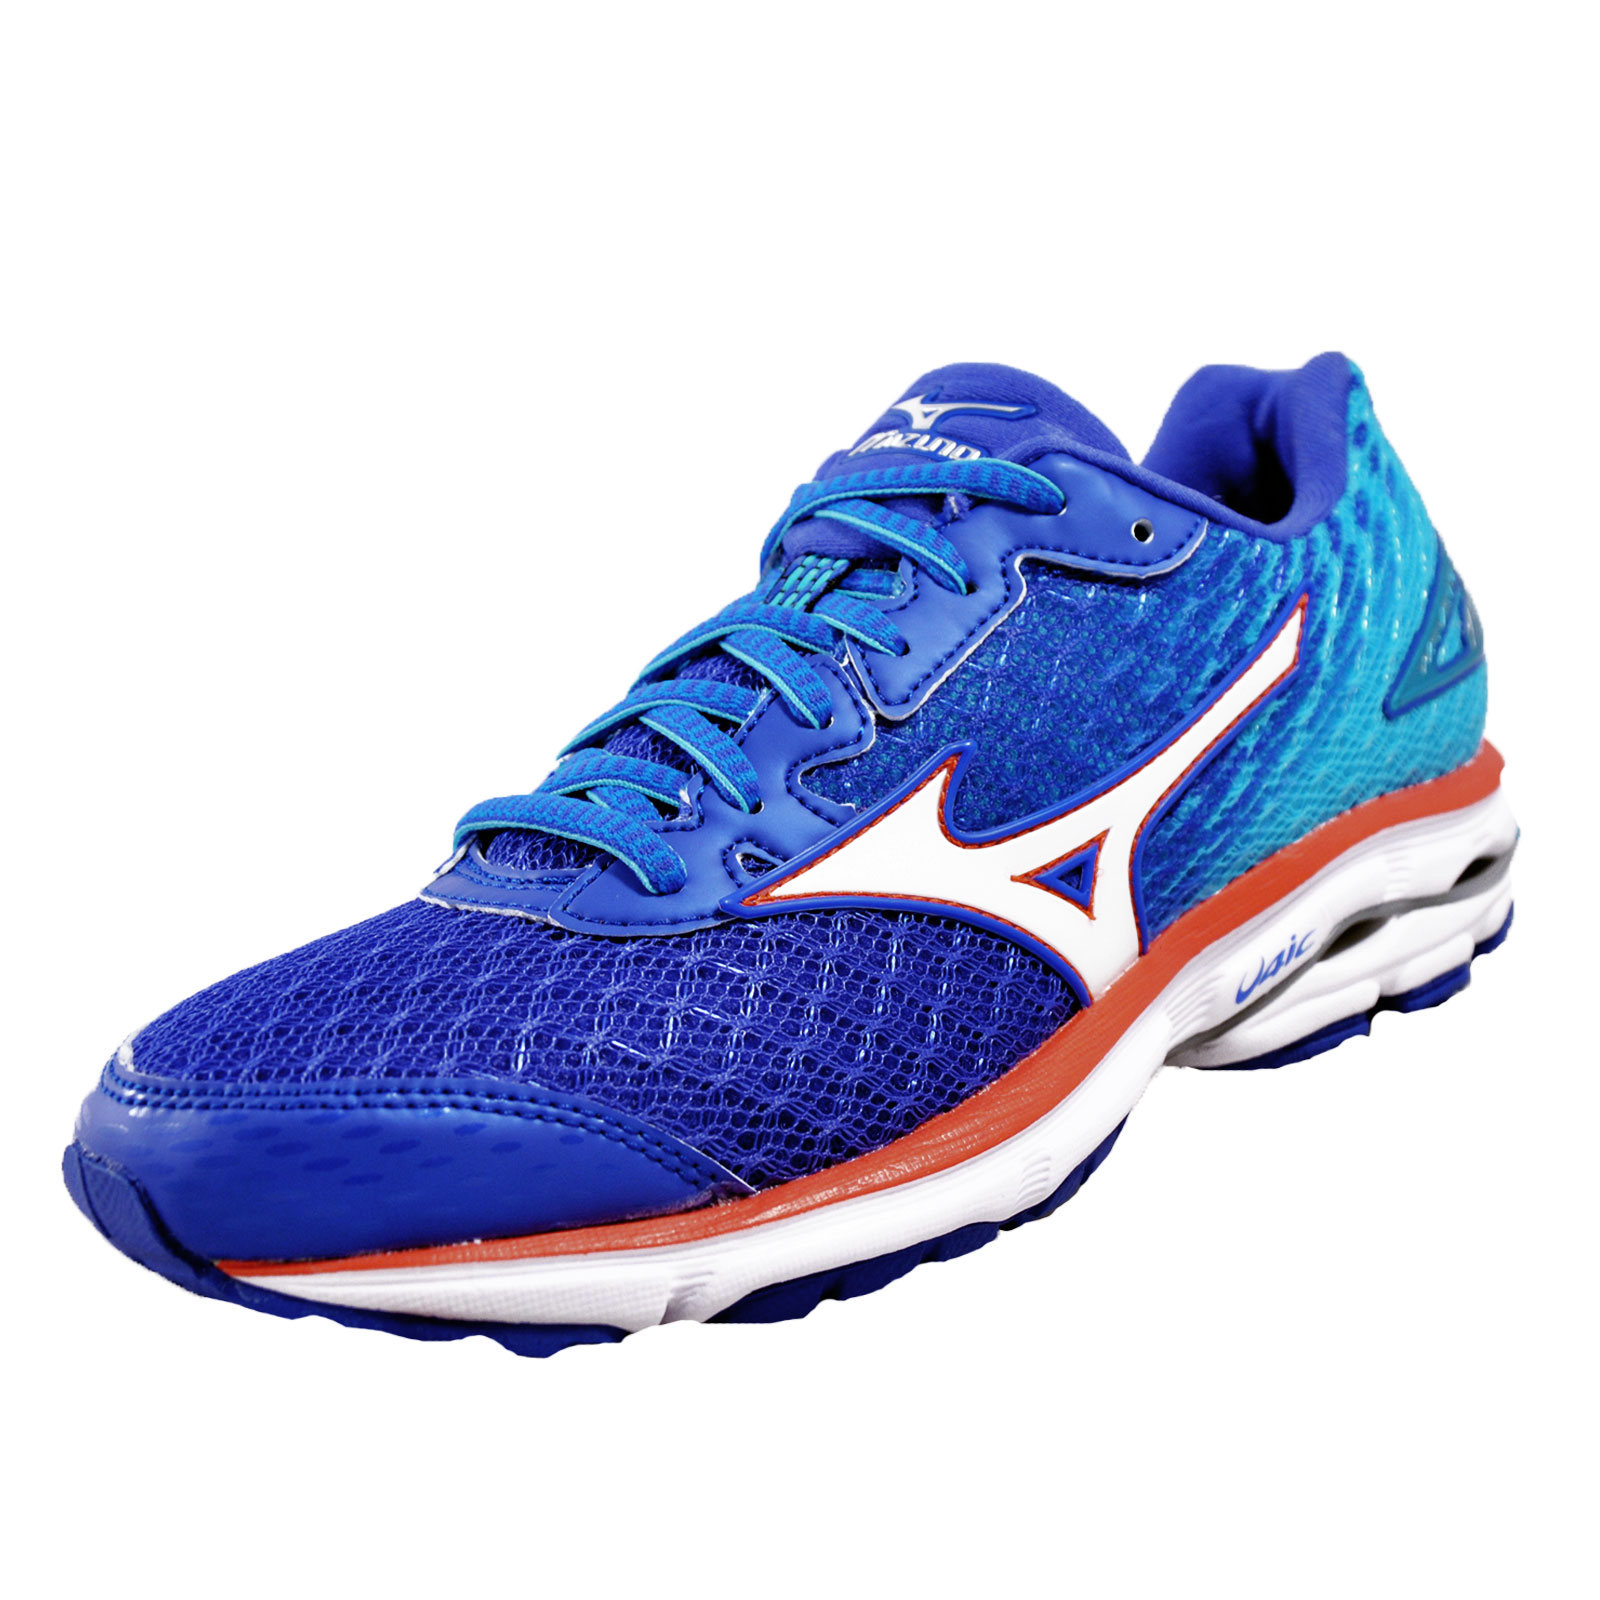 mizuno wave rider 19 superior womens running shoes fitness. Black Bedroom Furniture Sets. Home Design Ideas